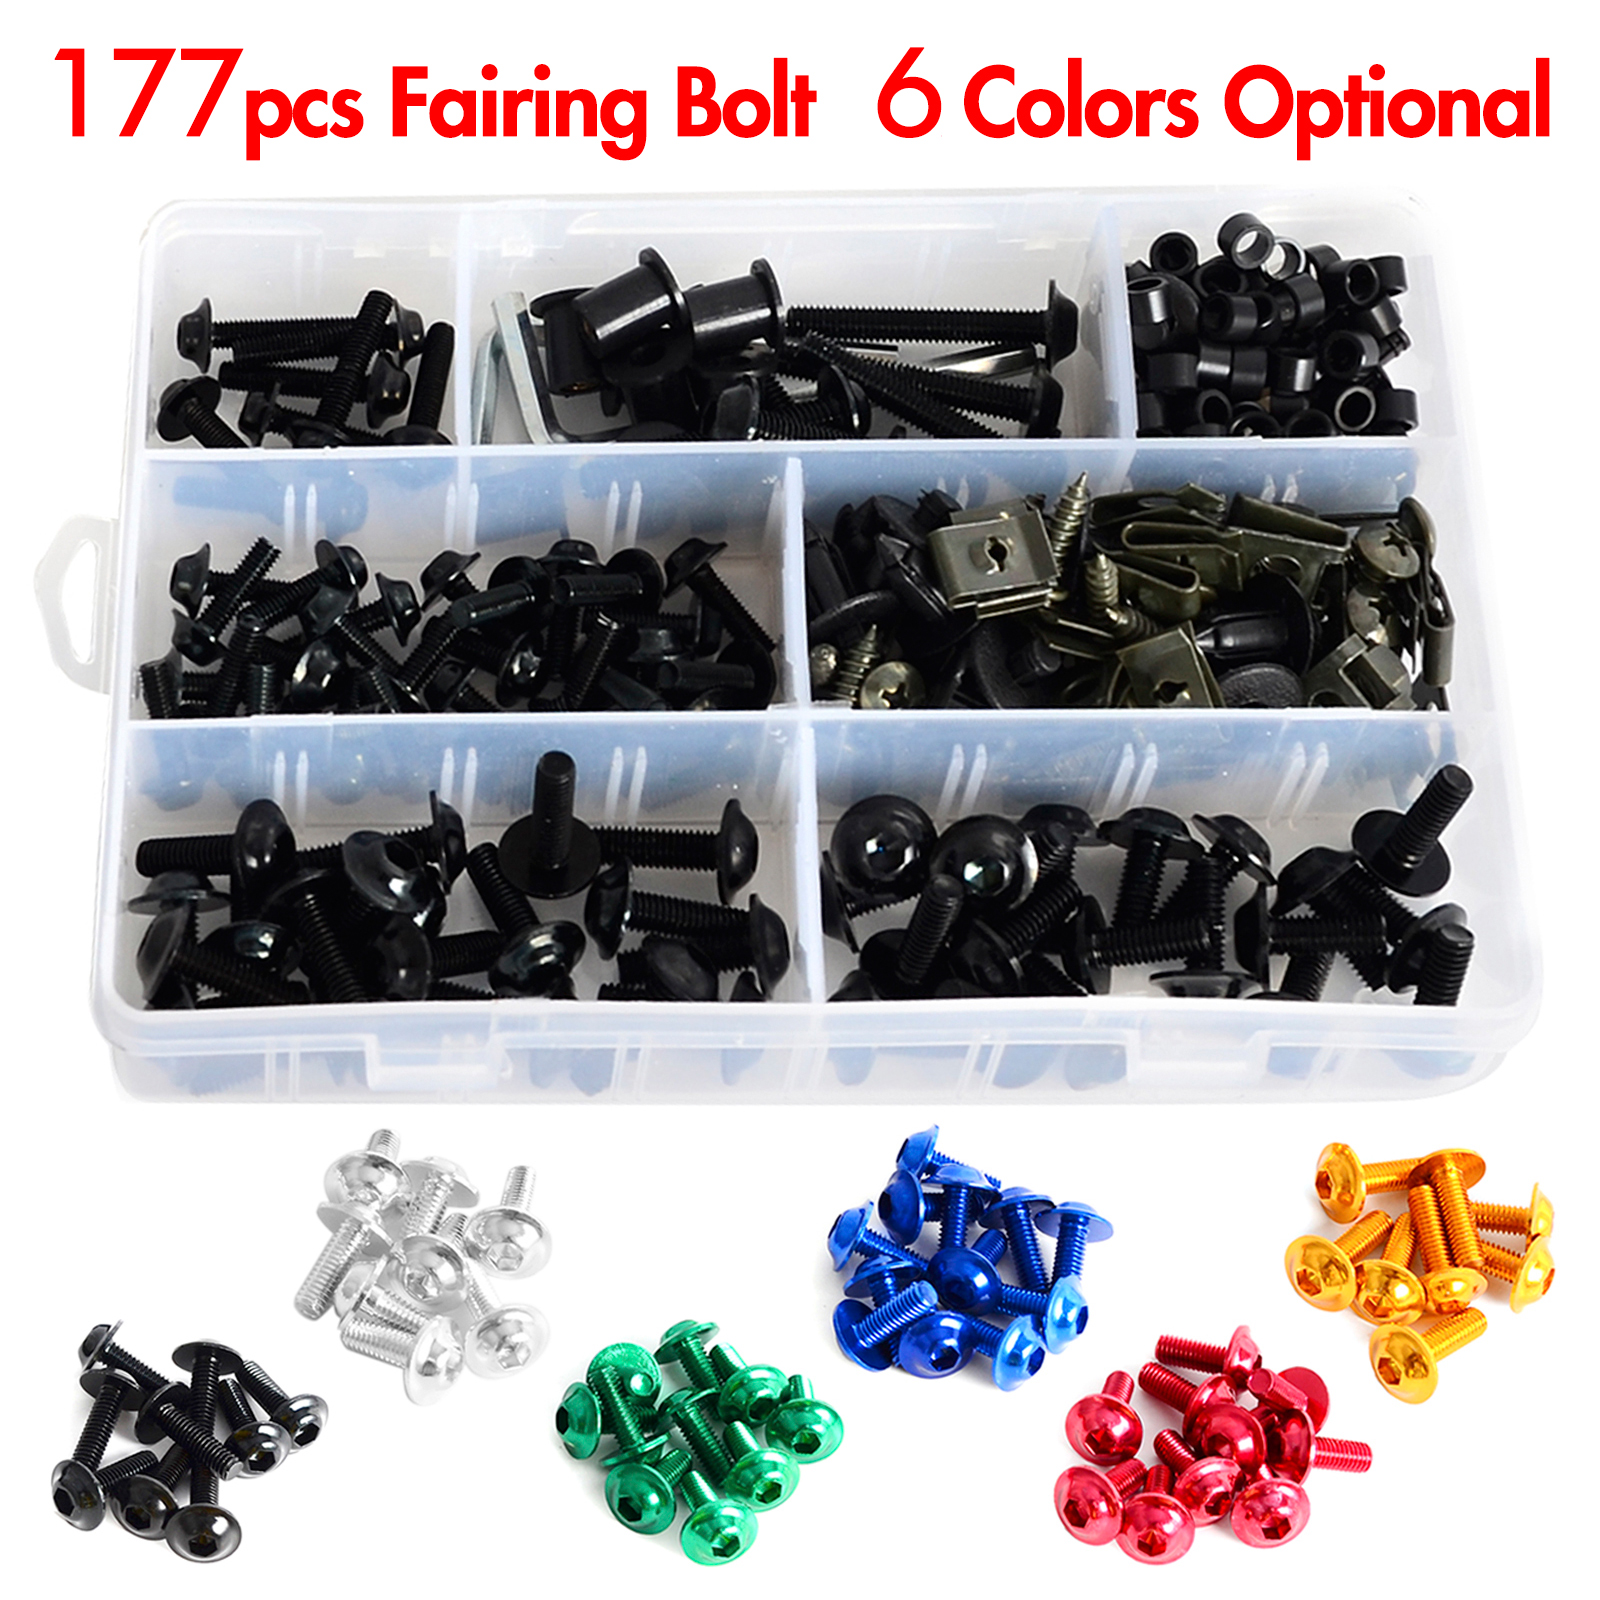 NICECNC Complete CNC Fairing Bolts Kit Bodywork Screws Nut For Aprilia Pegaso 650 RS50 RS125 RS250 RSV4 RSV1000R RSV Mille Tuono motorcycle accessories gear shifter shoe case cover protector for aprilia rs 125 rs125 rsv4 fairing kit rsv 1000 tuono shiver